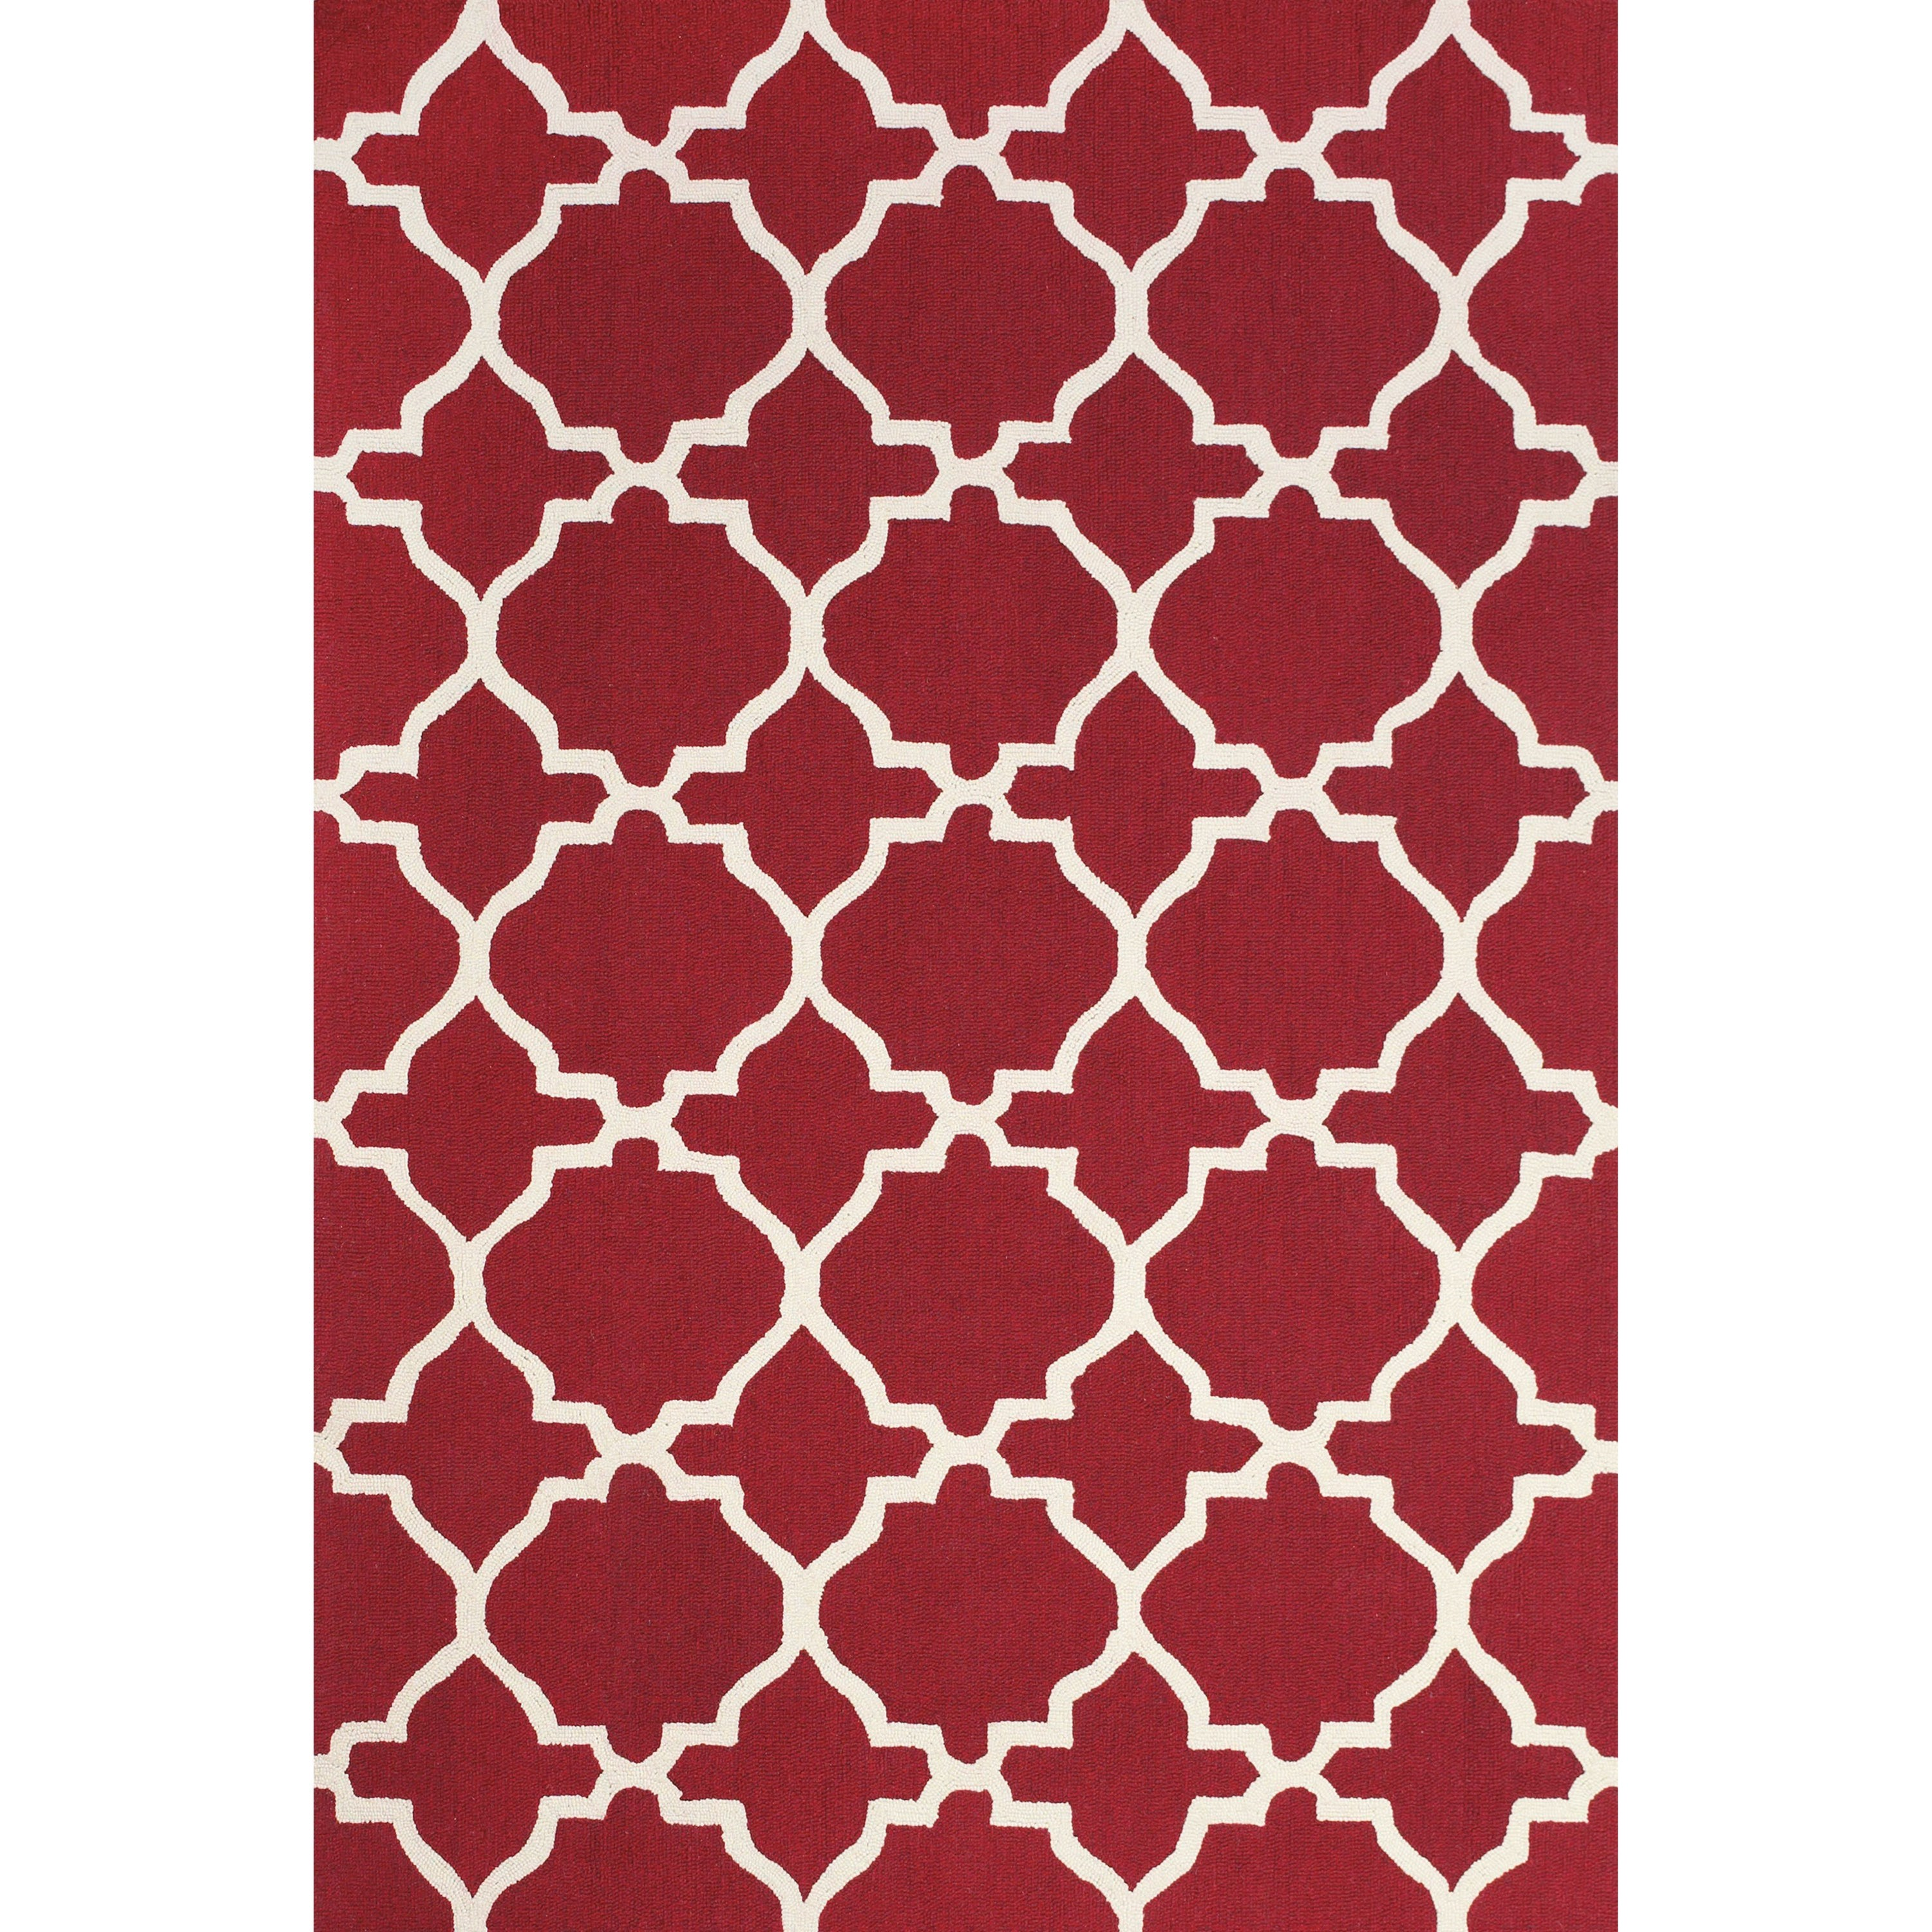 Cetara Red/White 2' x 3' Area Rug by Feizy Rugs at Jacksonville Furniture Mart